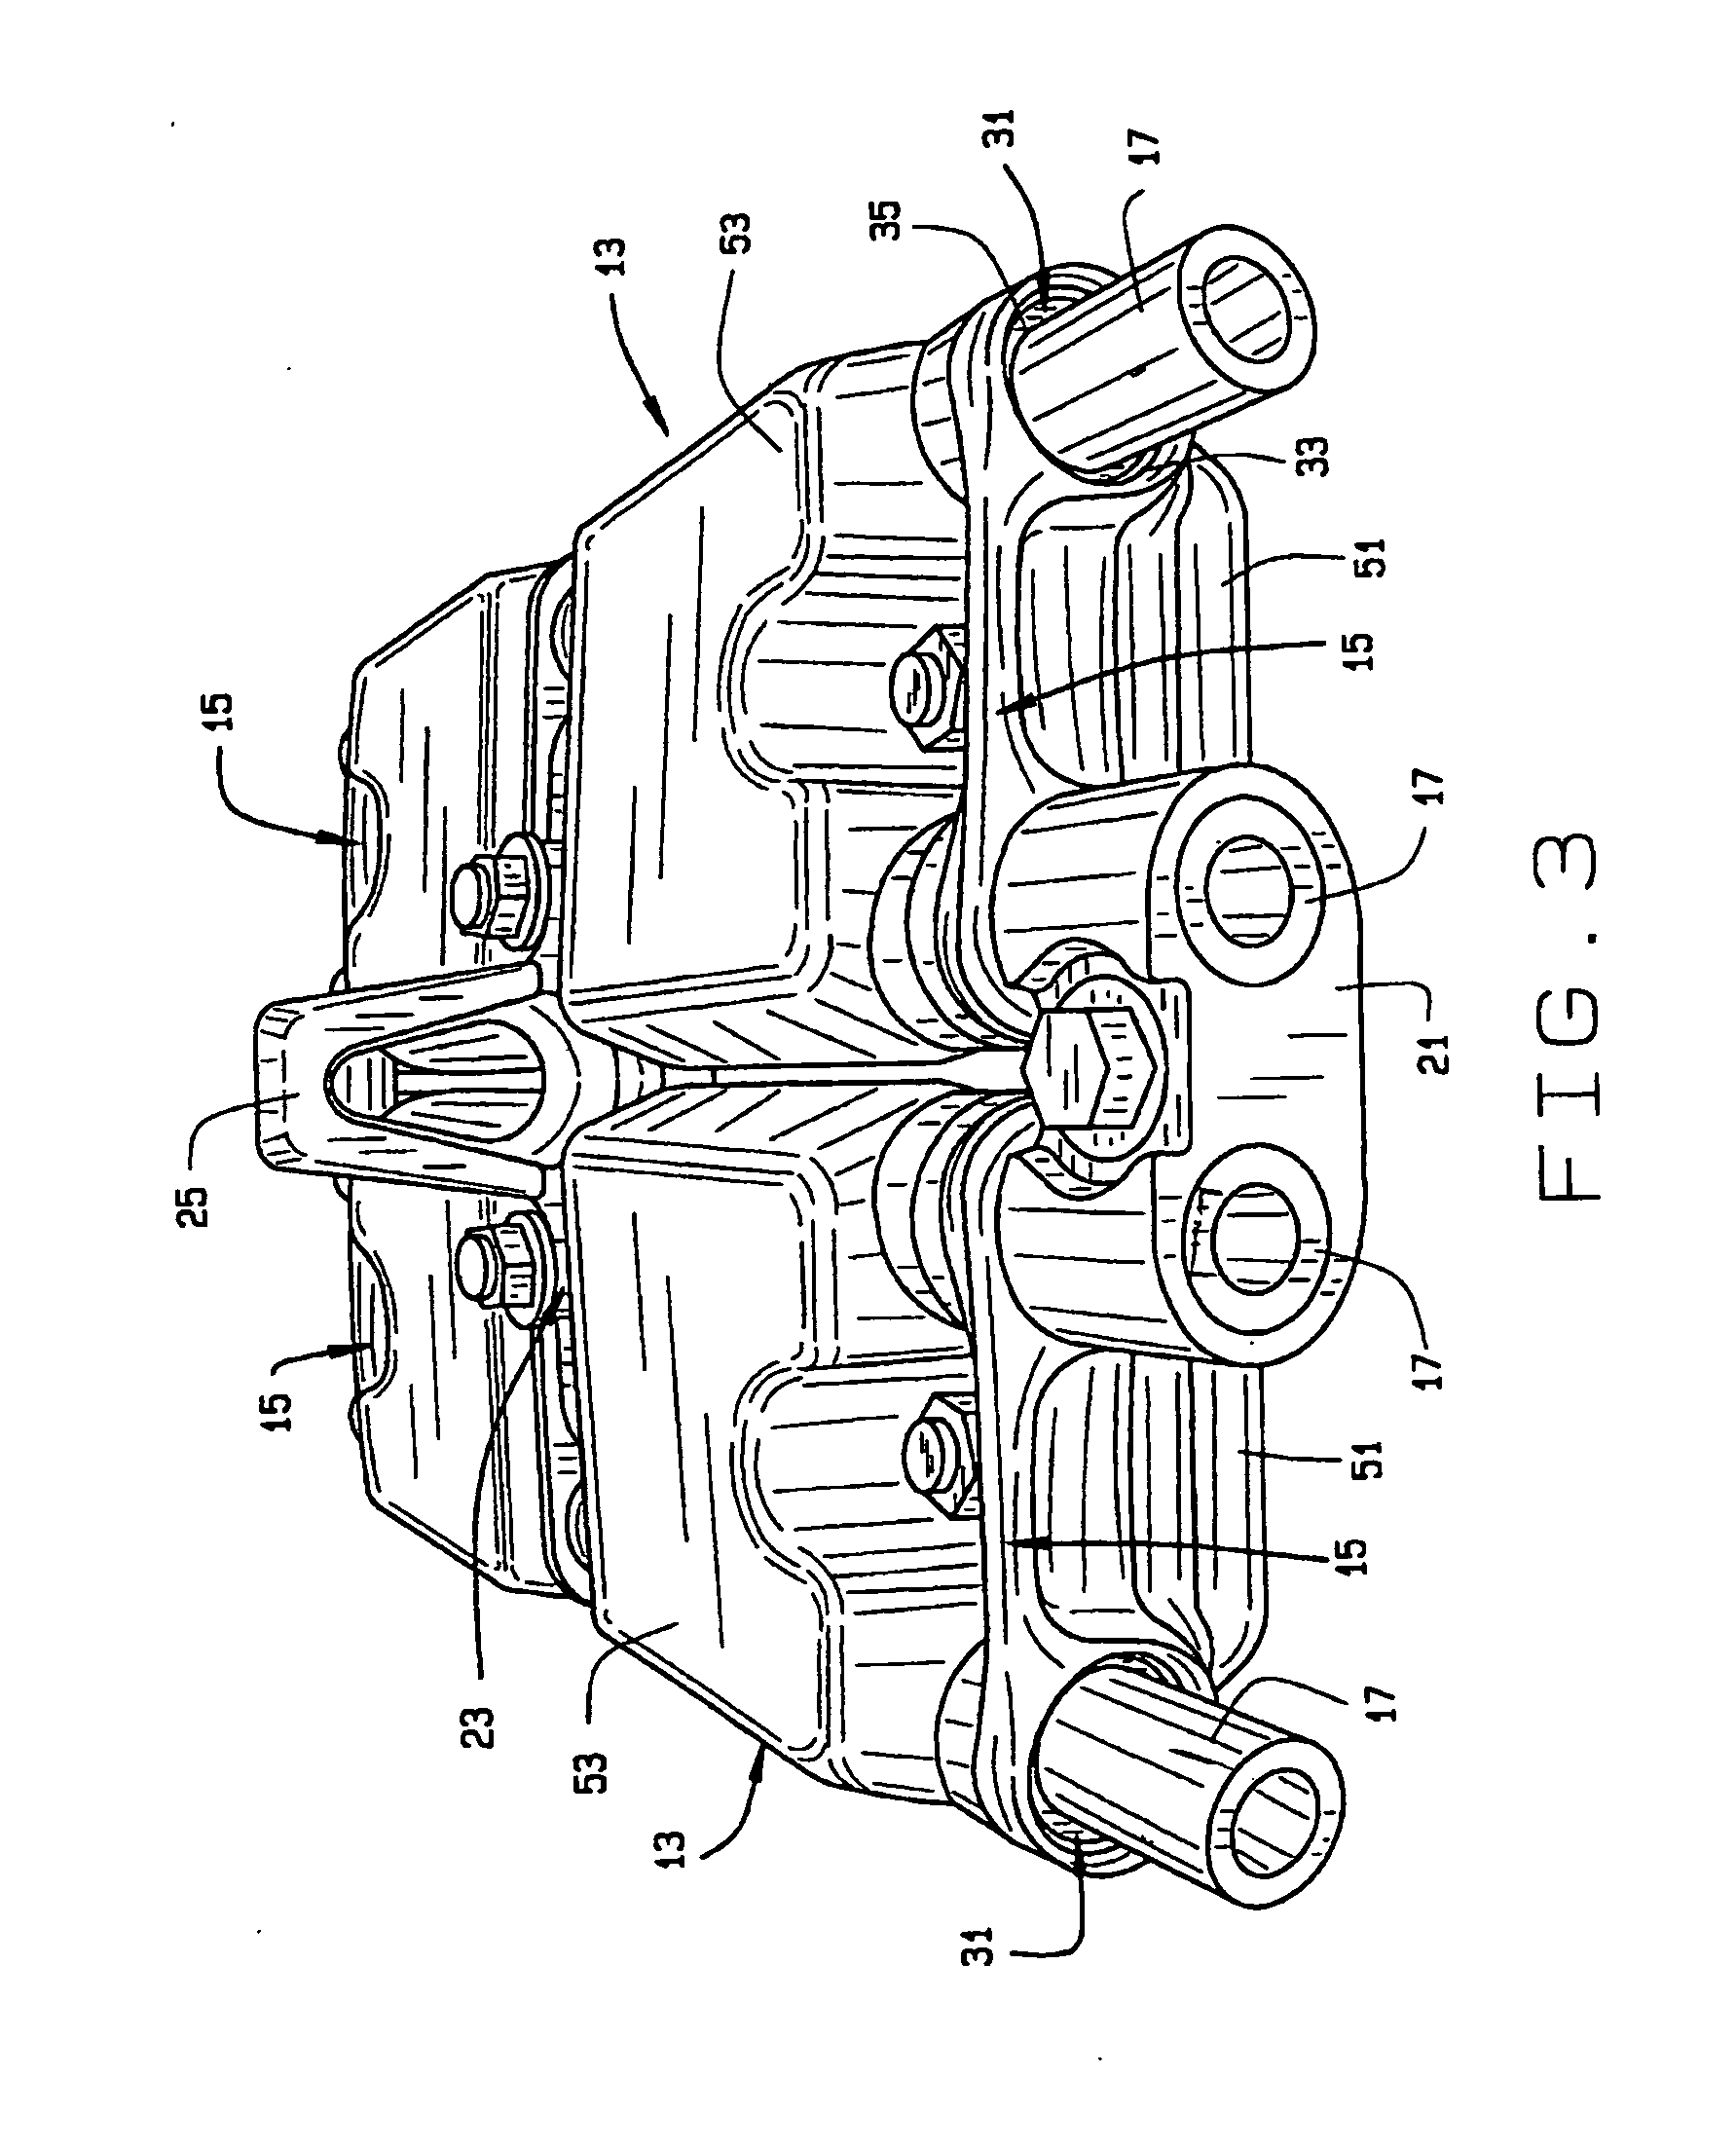 patent us20120292983 track shoe assembly for continuous track